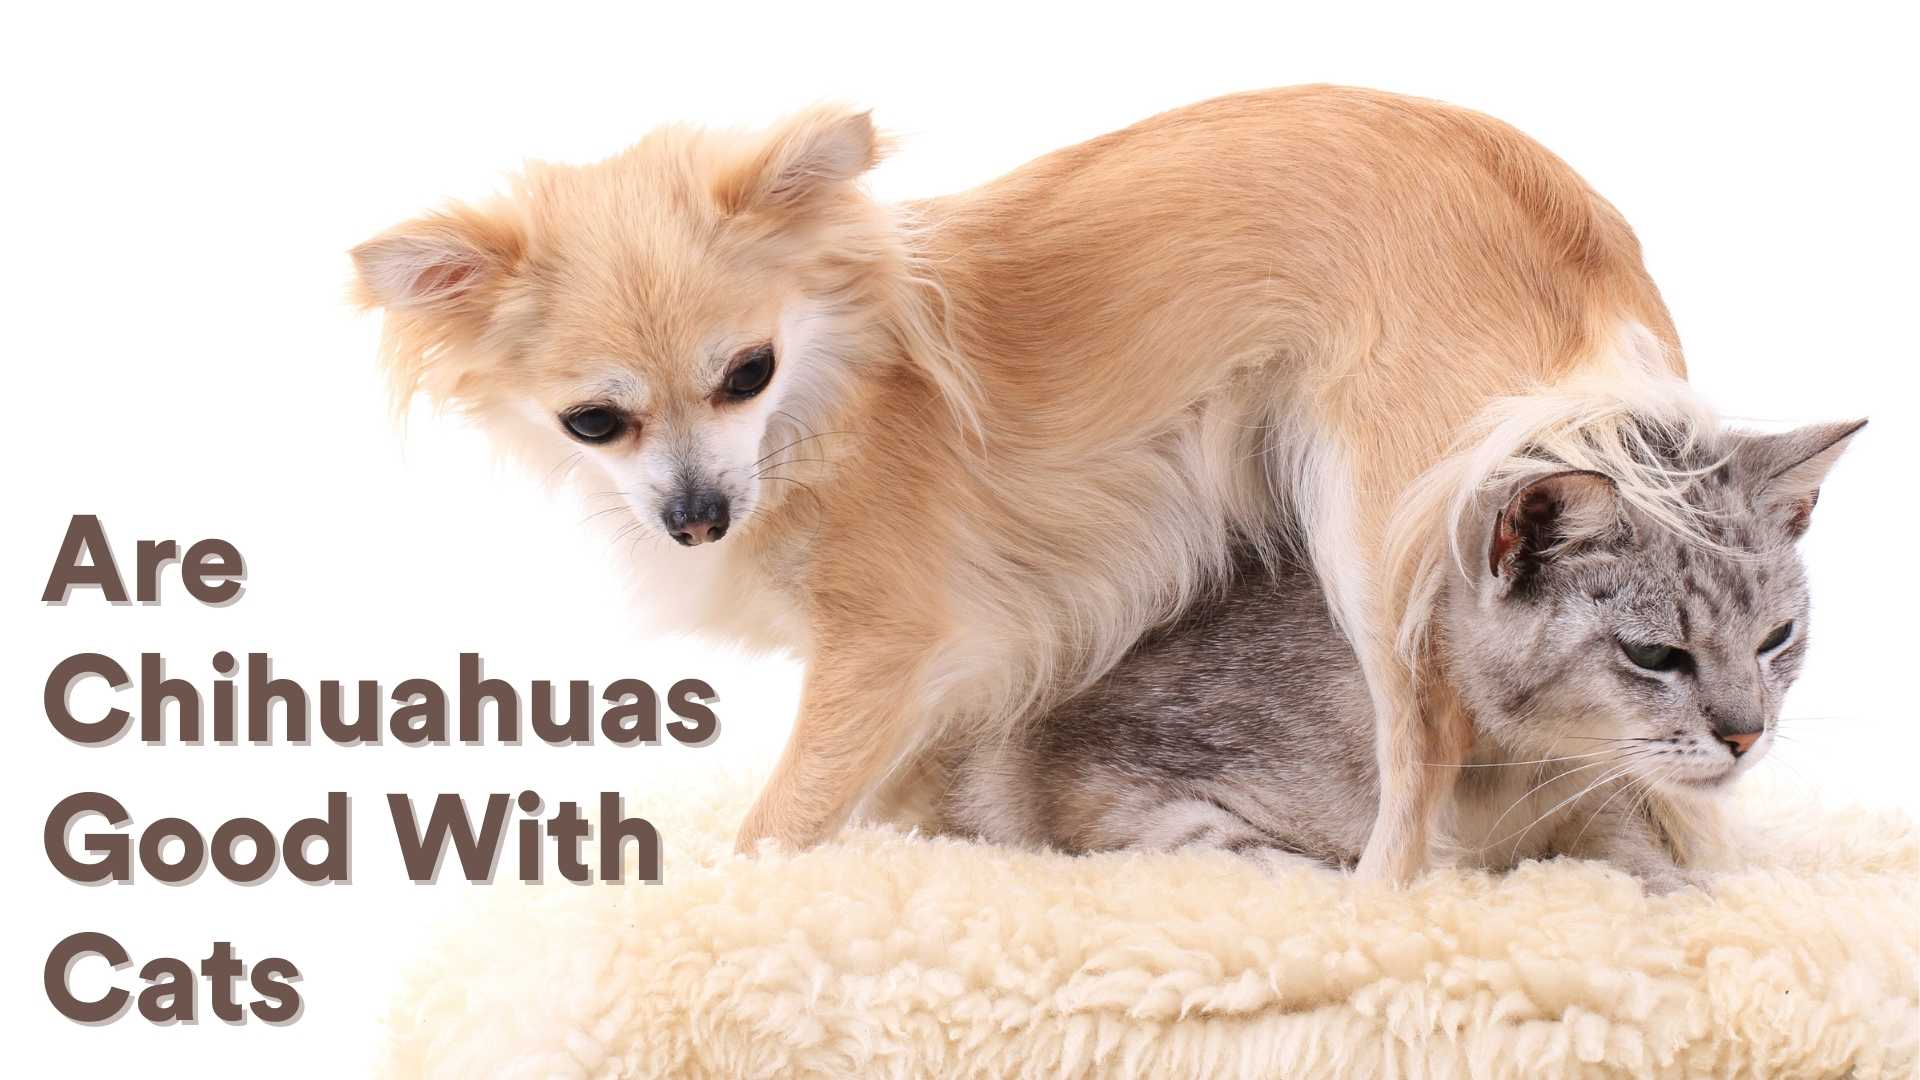 Are Chihuahuas Good With Cats